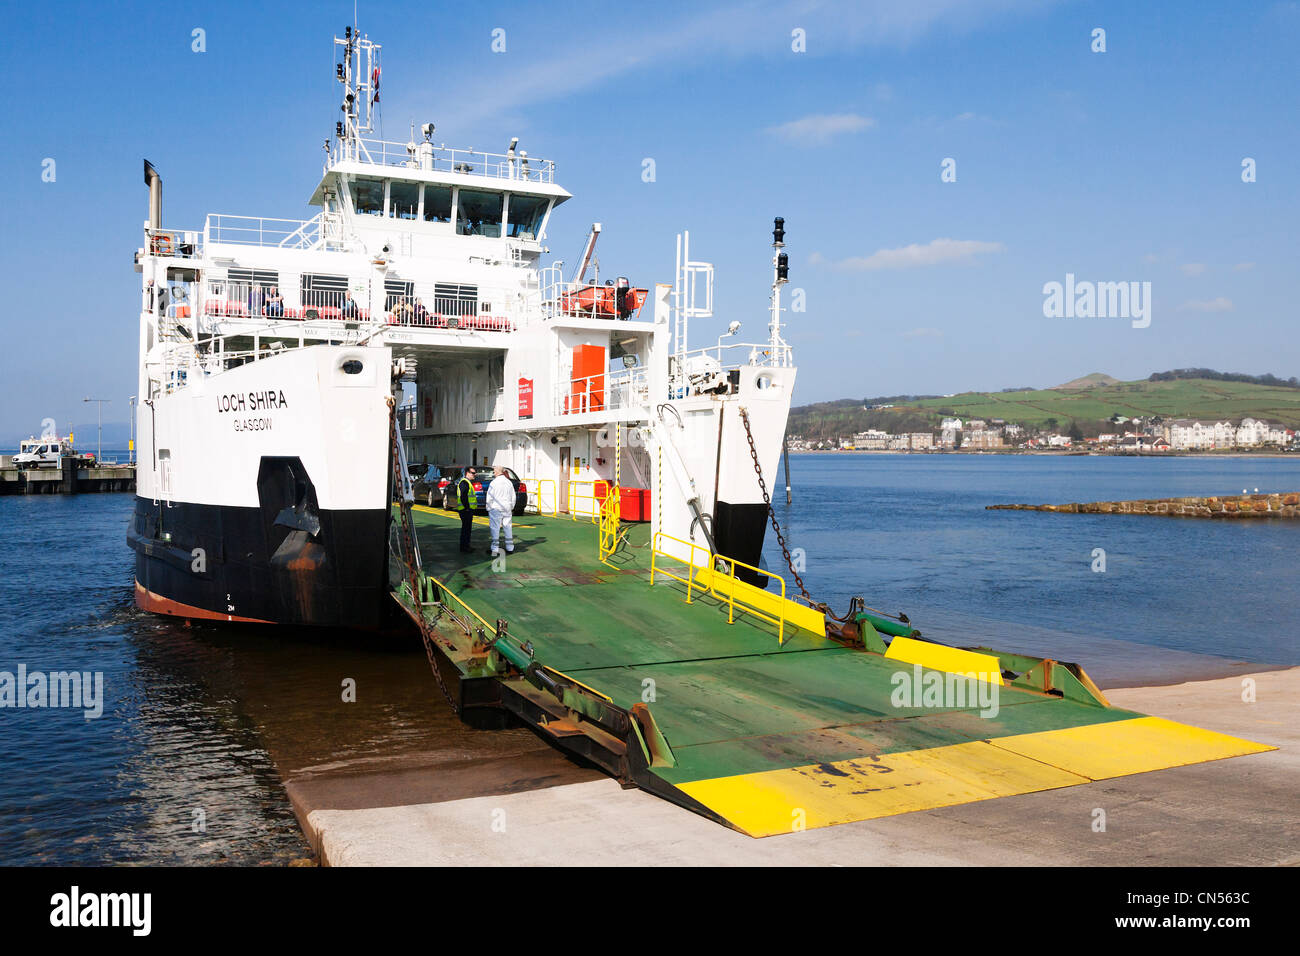 MV Loch Shira, the Largs to the Isle of Cumbrae ferry, North Ayeshire, Scotland. - Stock Image